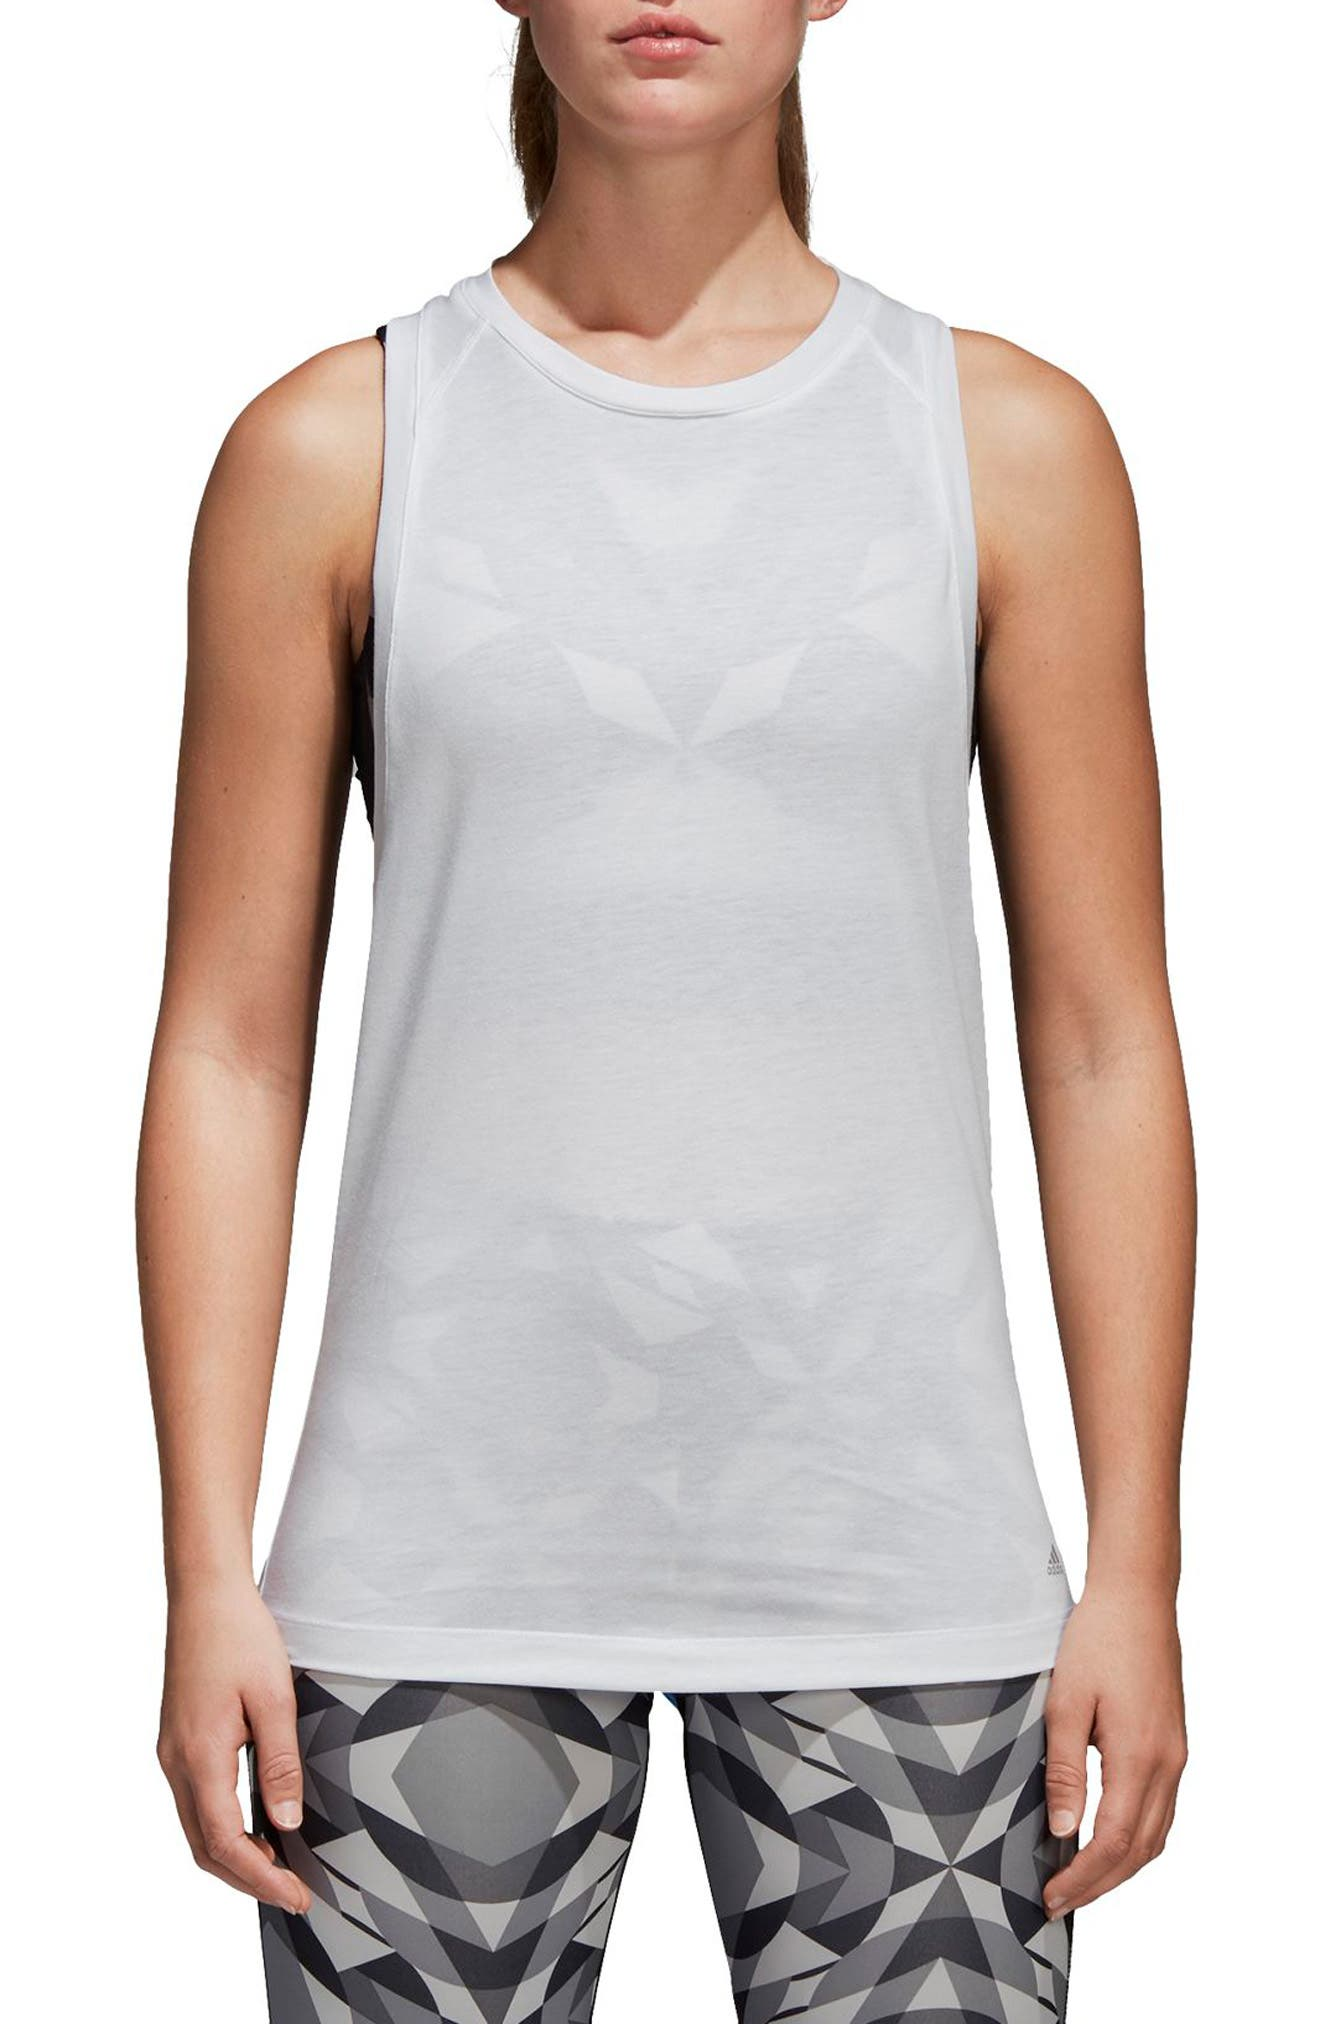 Wanderlust Parley Tank,                         Main,                         color, White